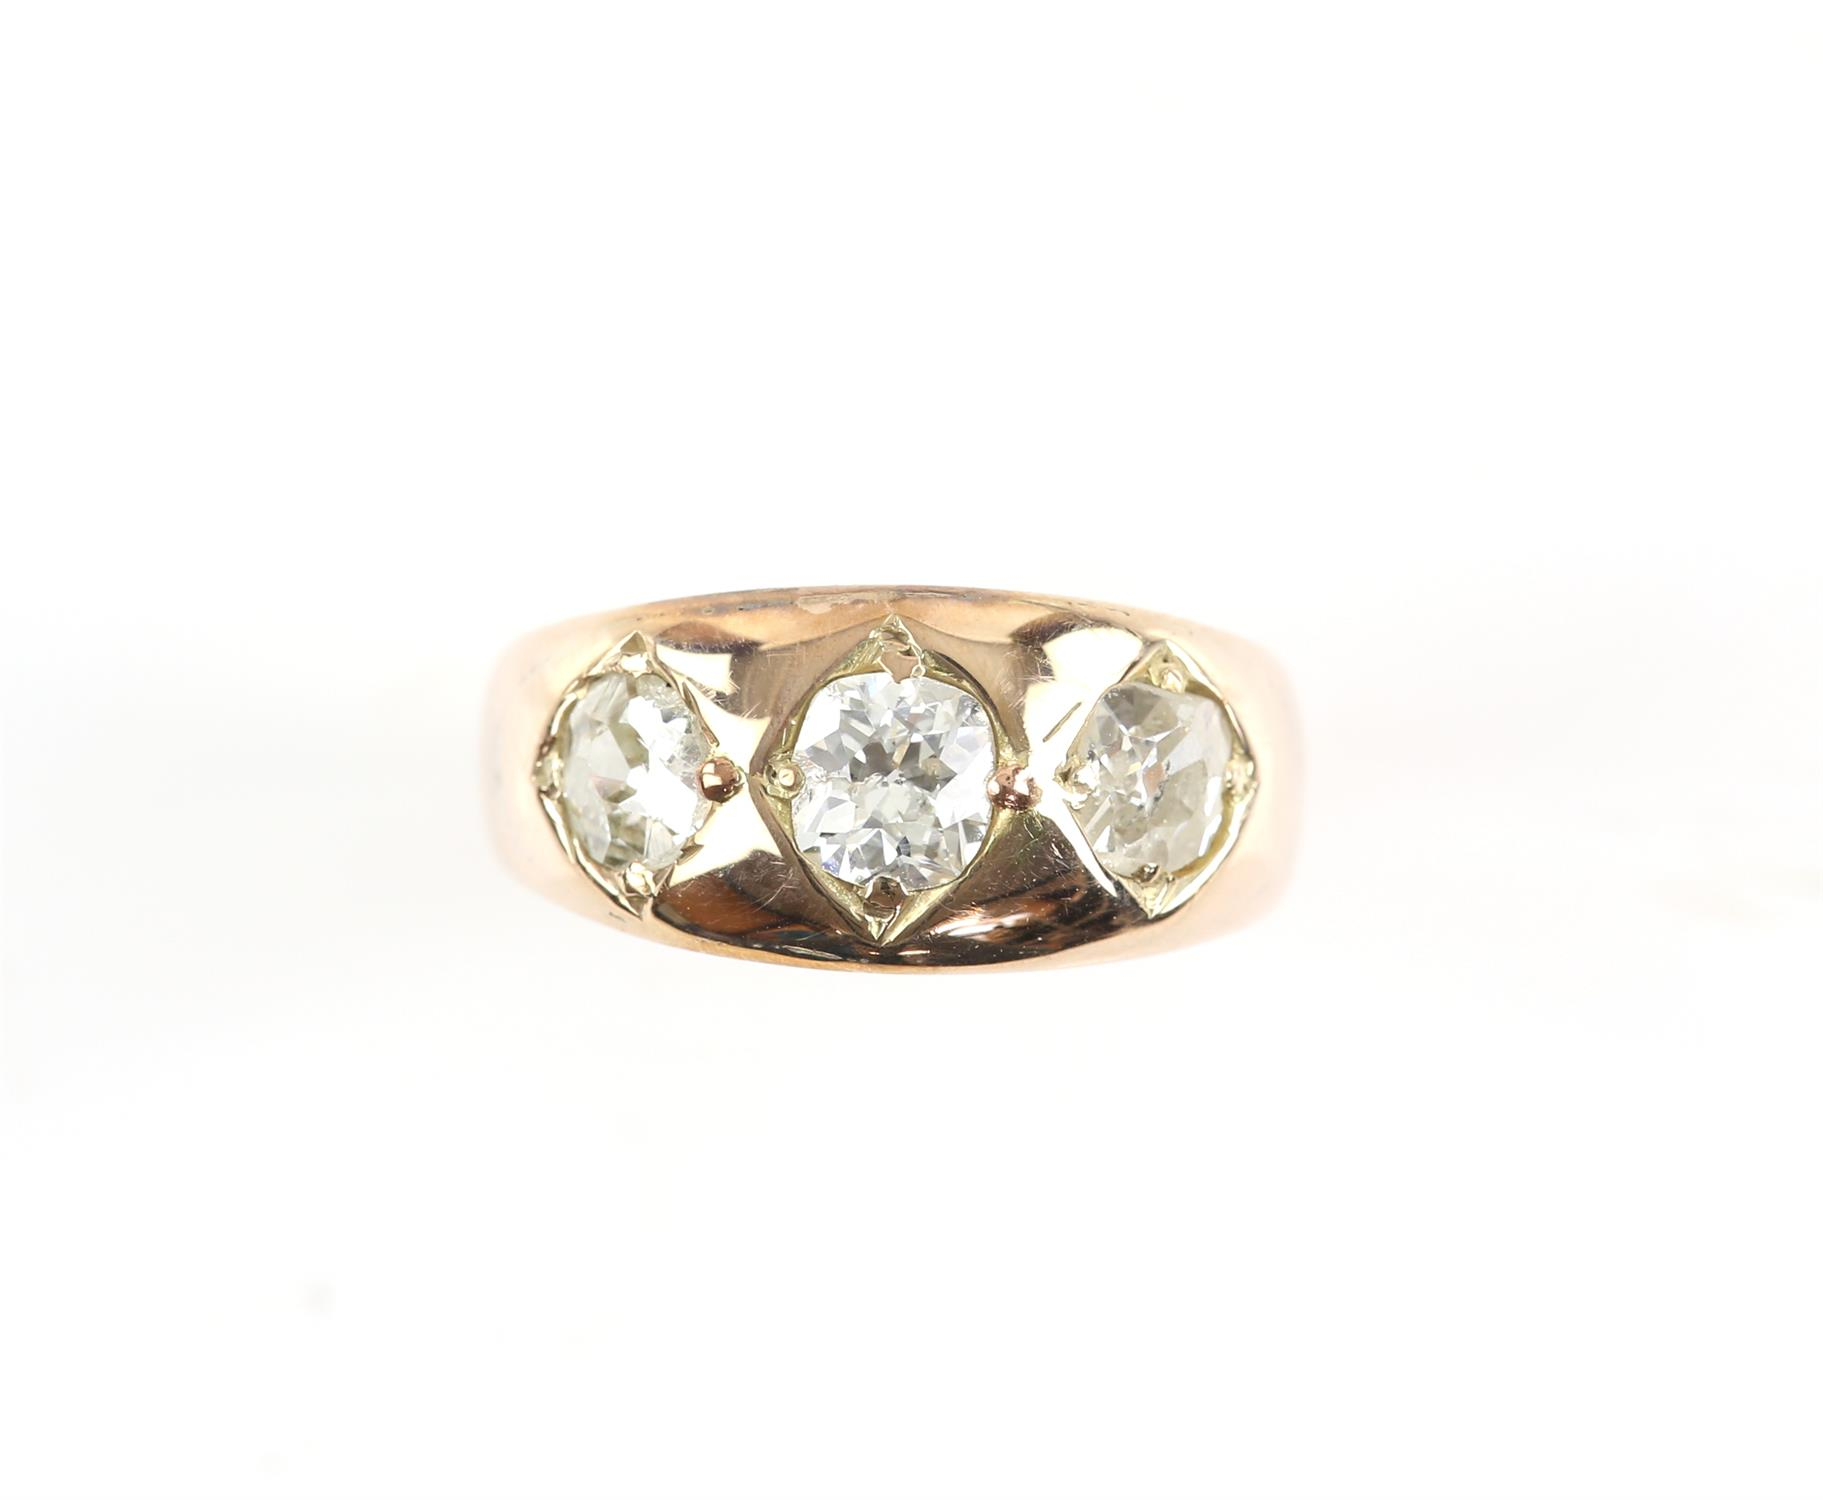 Victorian gypsy ring with three old mine cut diamonds, central diamond is 0.52 carat and the side